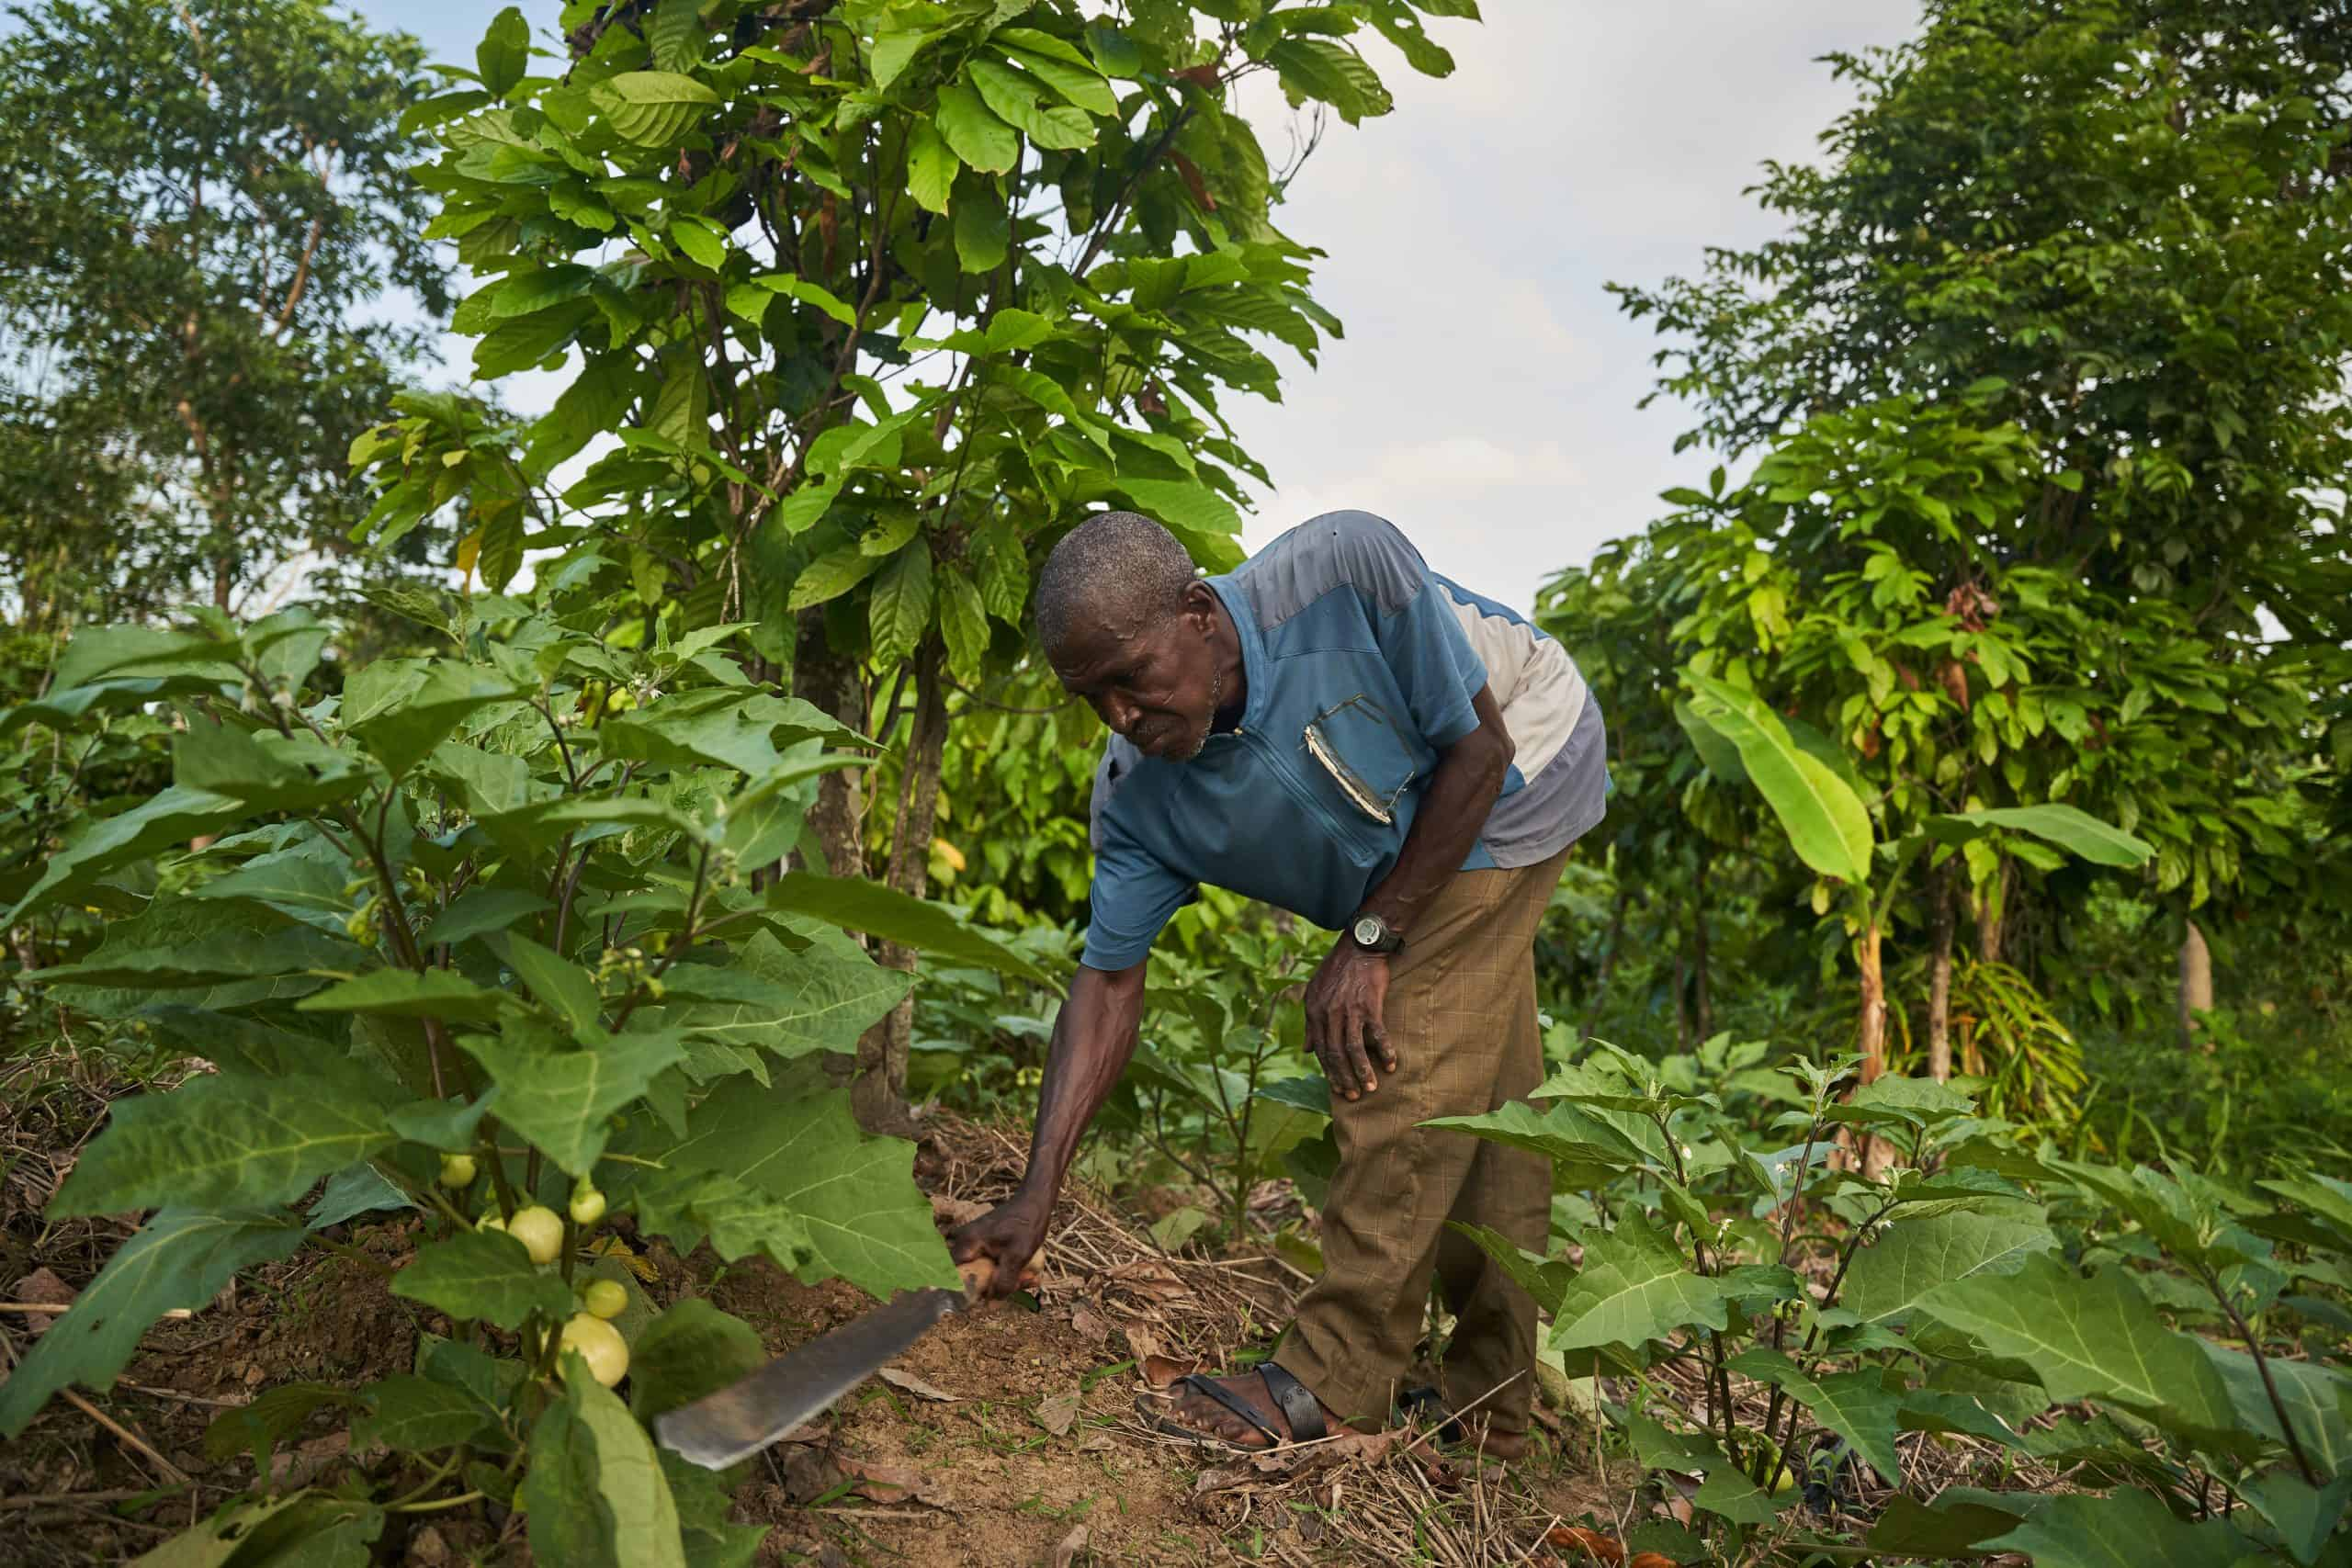 Farmer farming vegetables on sustainable cocoa farm in Ghana